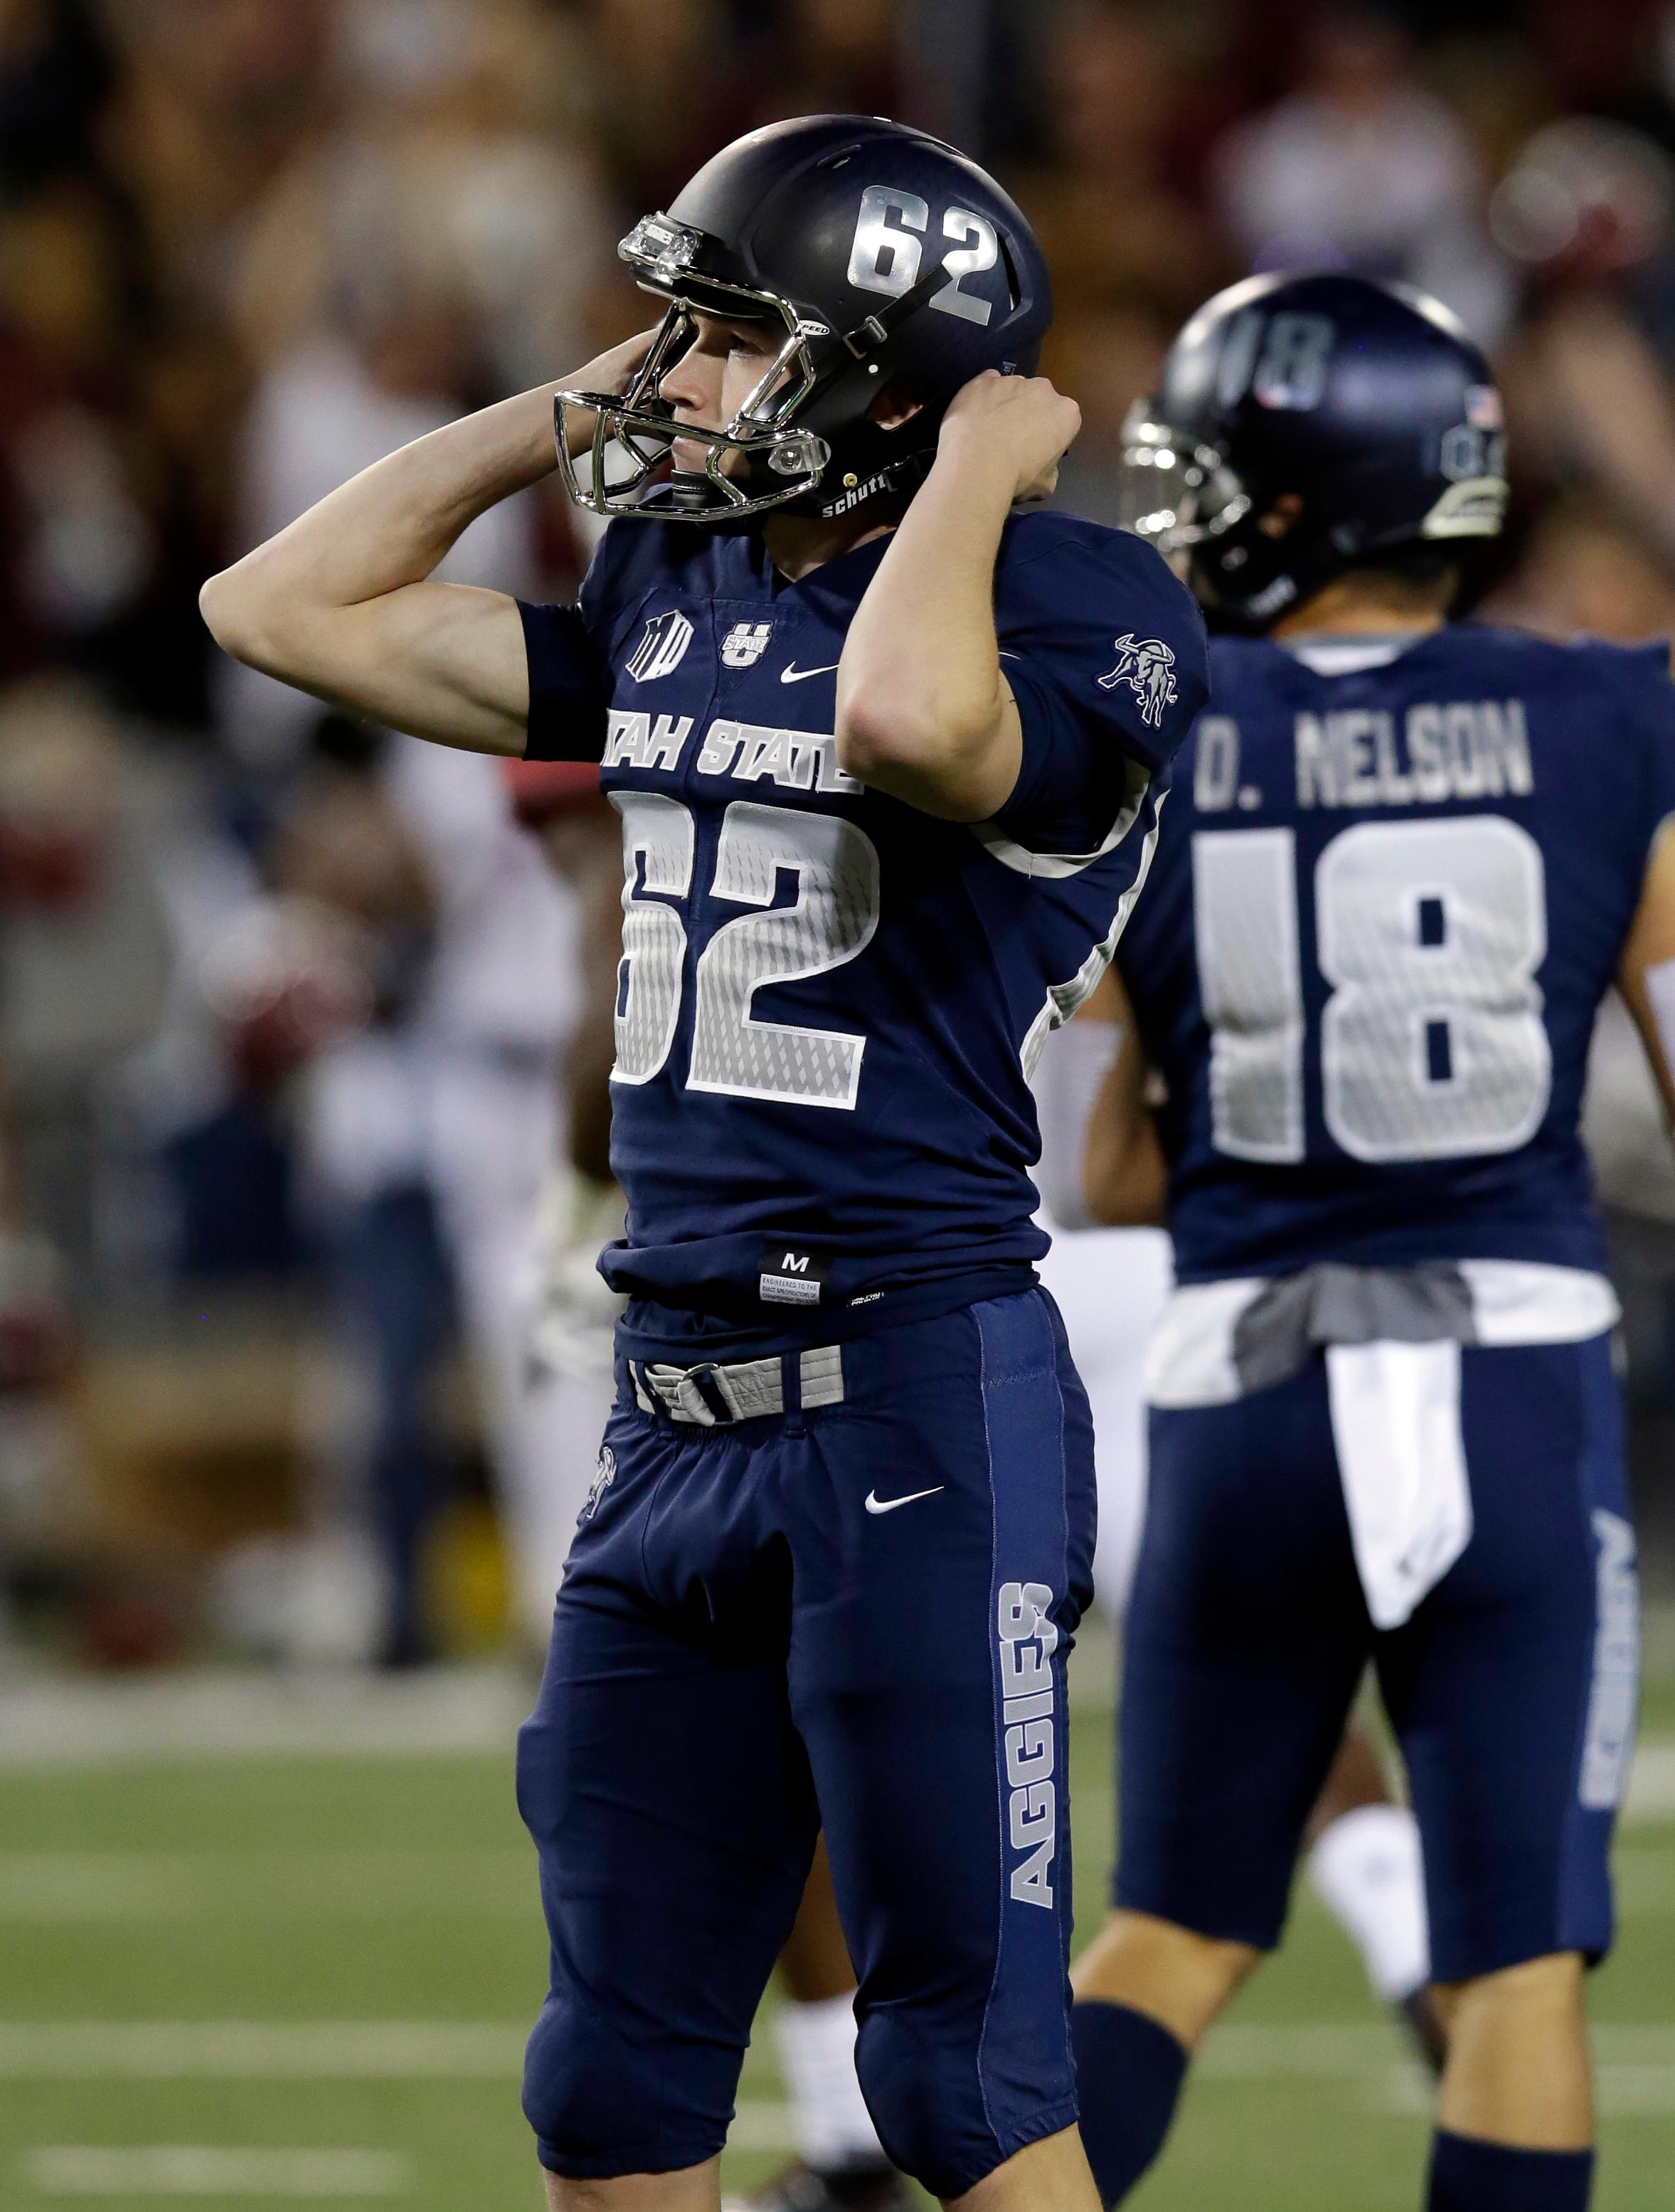 Utah State placekicker Dominik Eberle (62) reacts after missing a field goal in overtime against New Mexico State during the Arizona Bowl NCAA college football game, Friday, Dec. 29, 2017, in Tucson, Ariz. (AP Photo/Rick Scuteri)